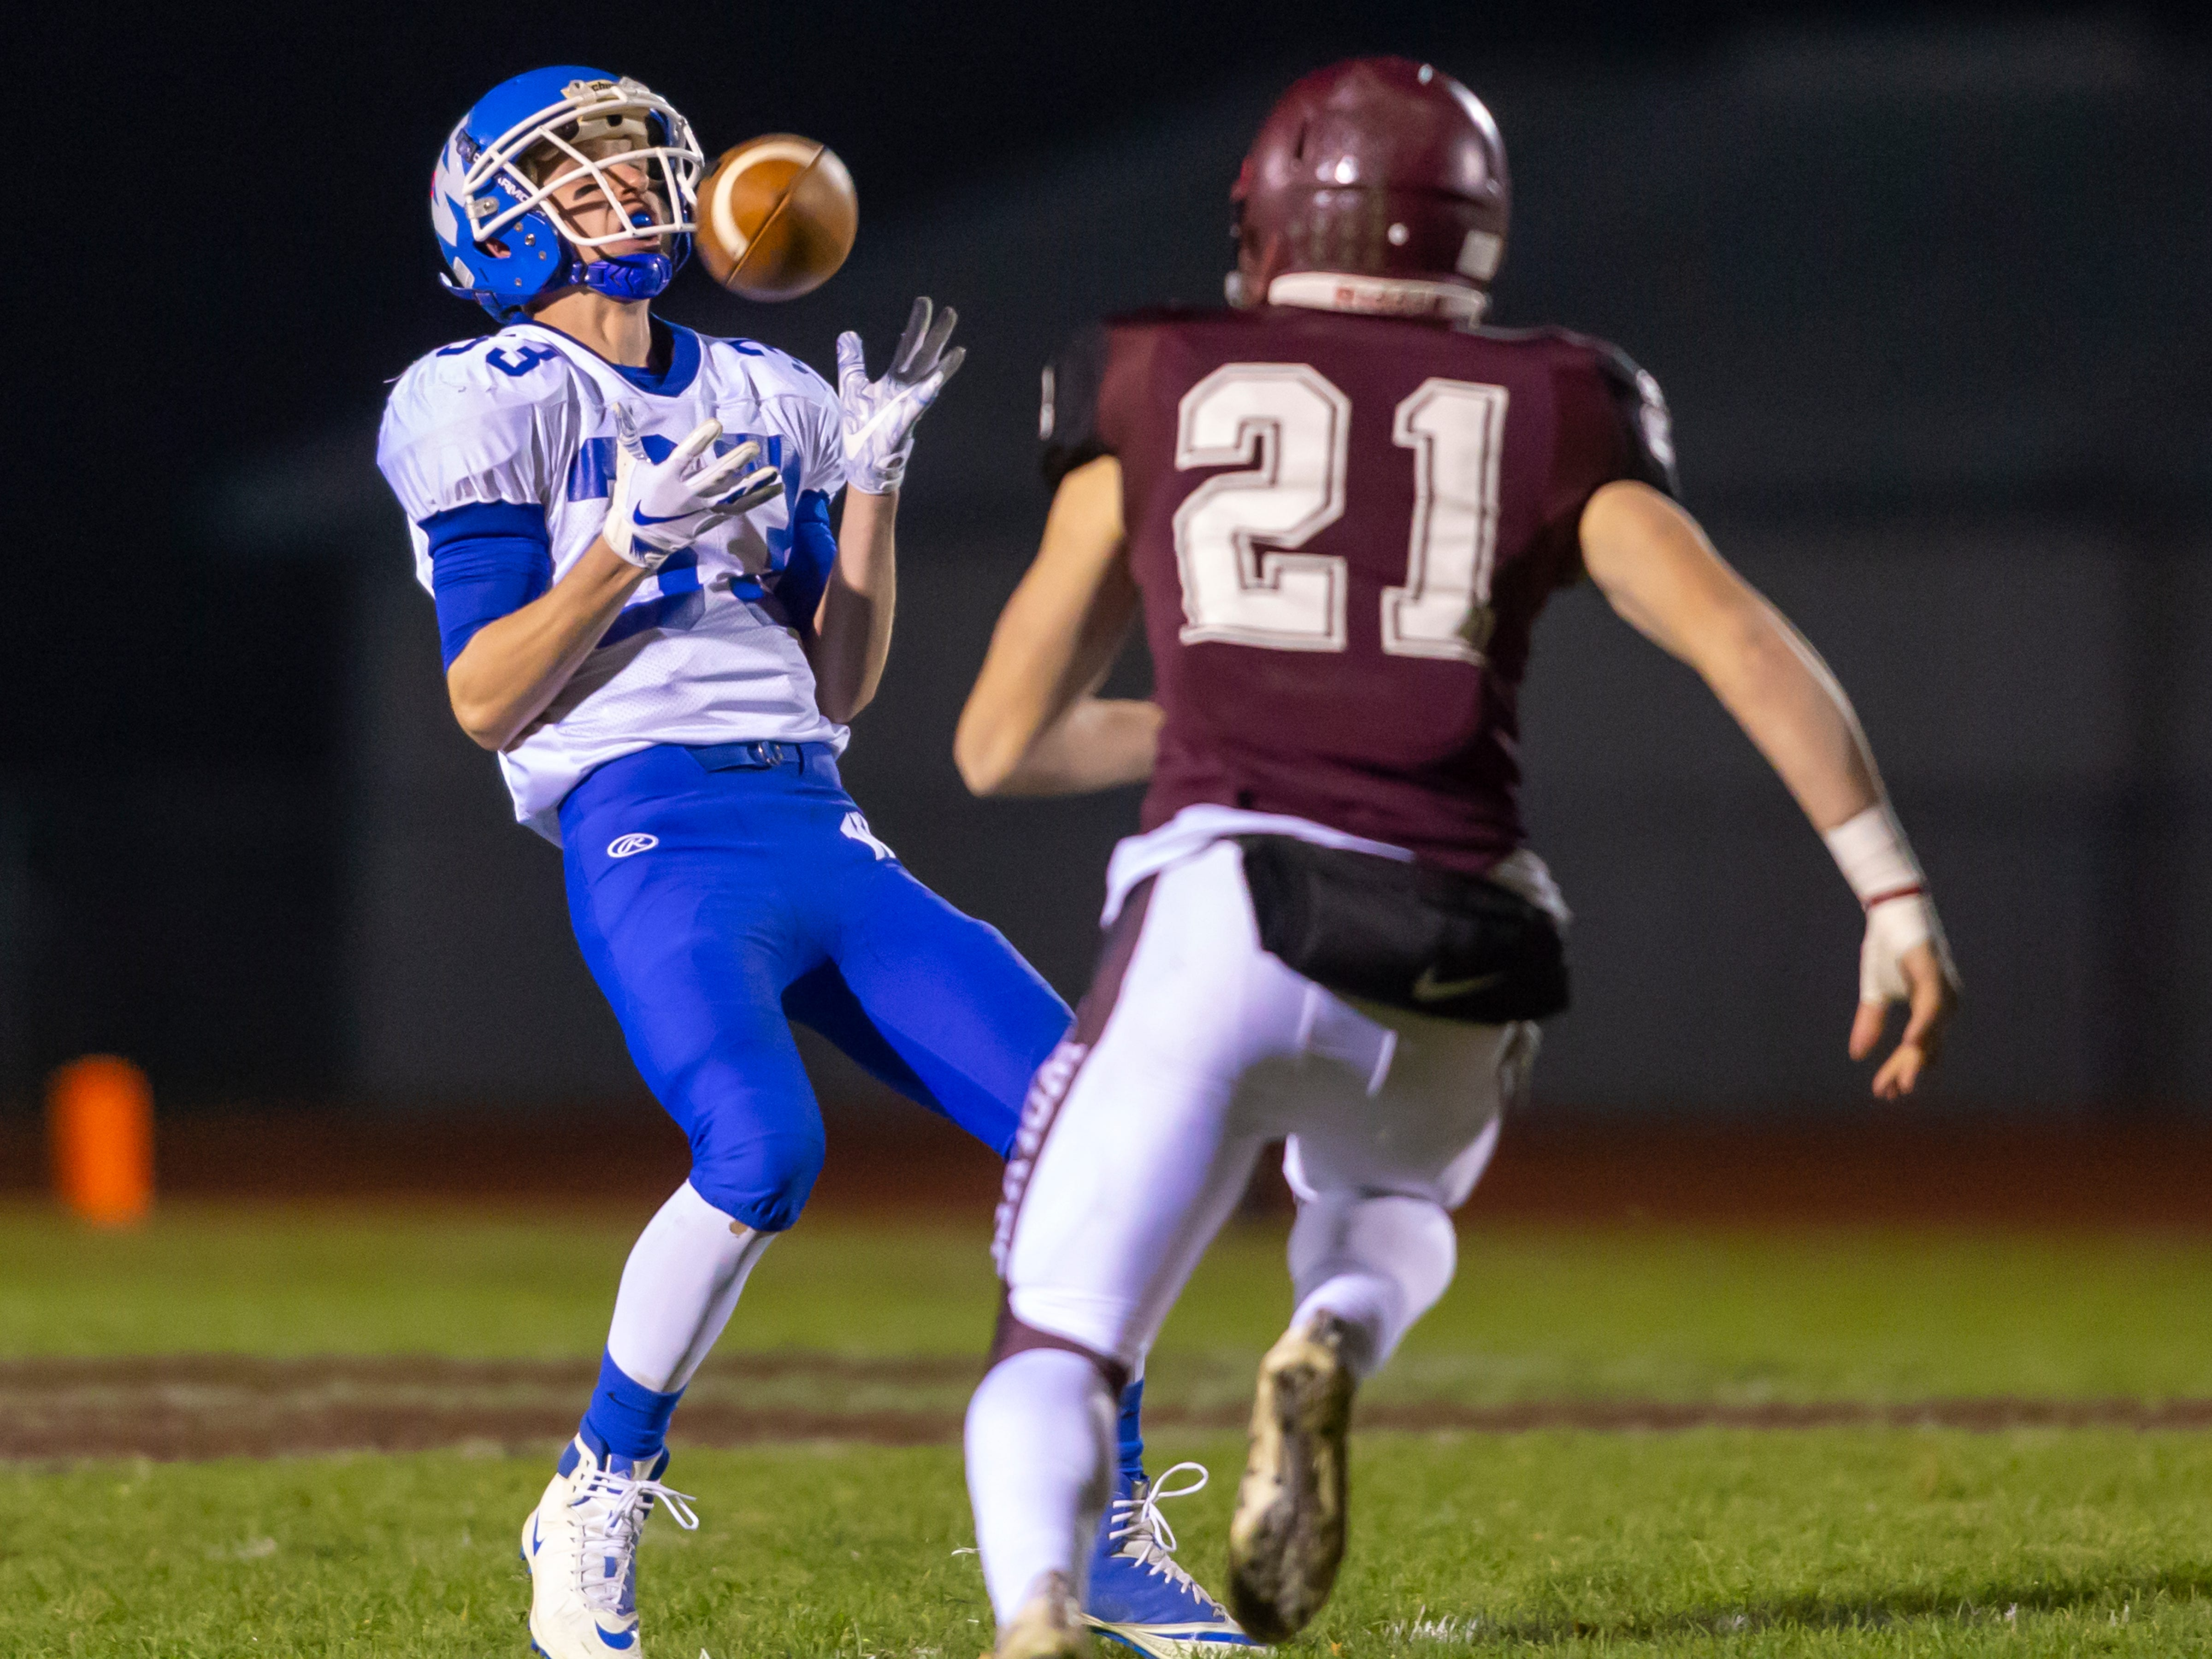 Wrightstown's Will Braeger catches the punt by Winneconne at Winneconne High School on Friday, October 26, 2018.